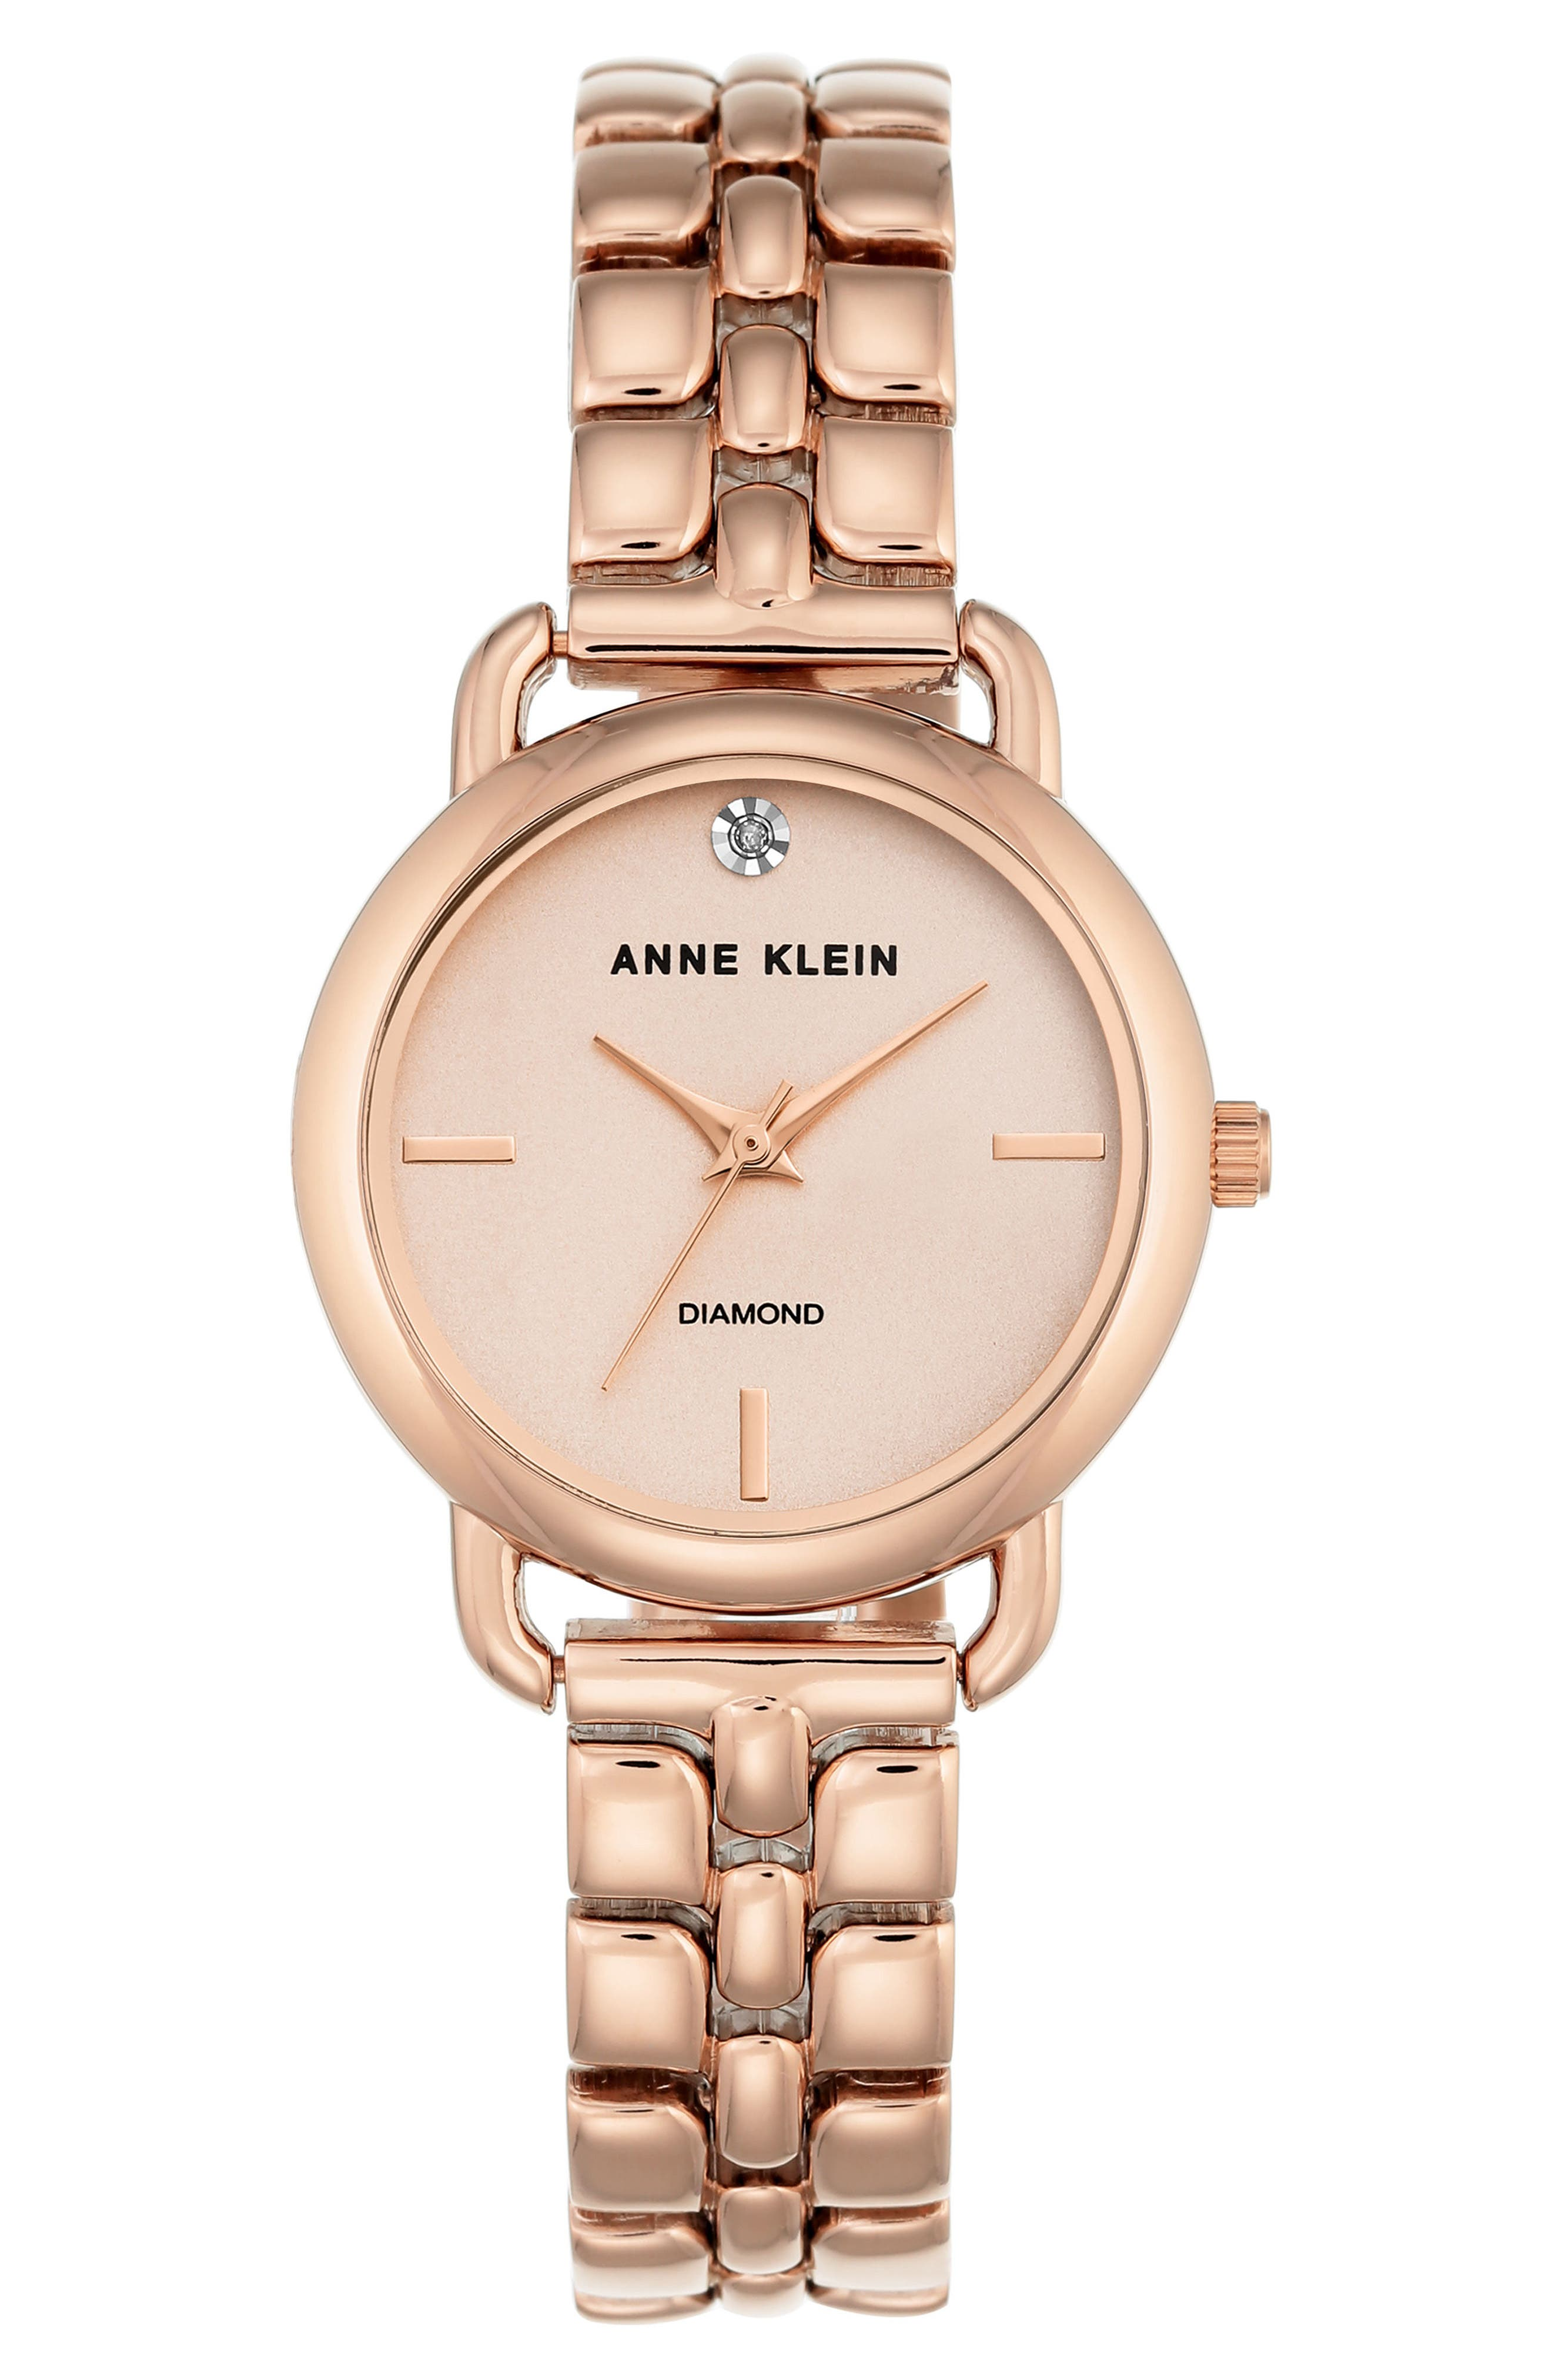 ANNE KLEIN Diamond Bracelet Watch, 30mm